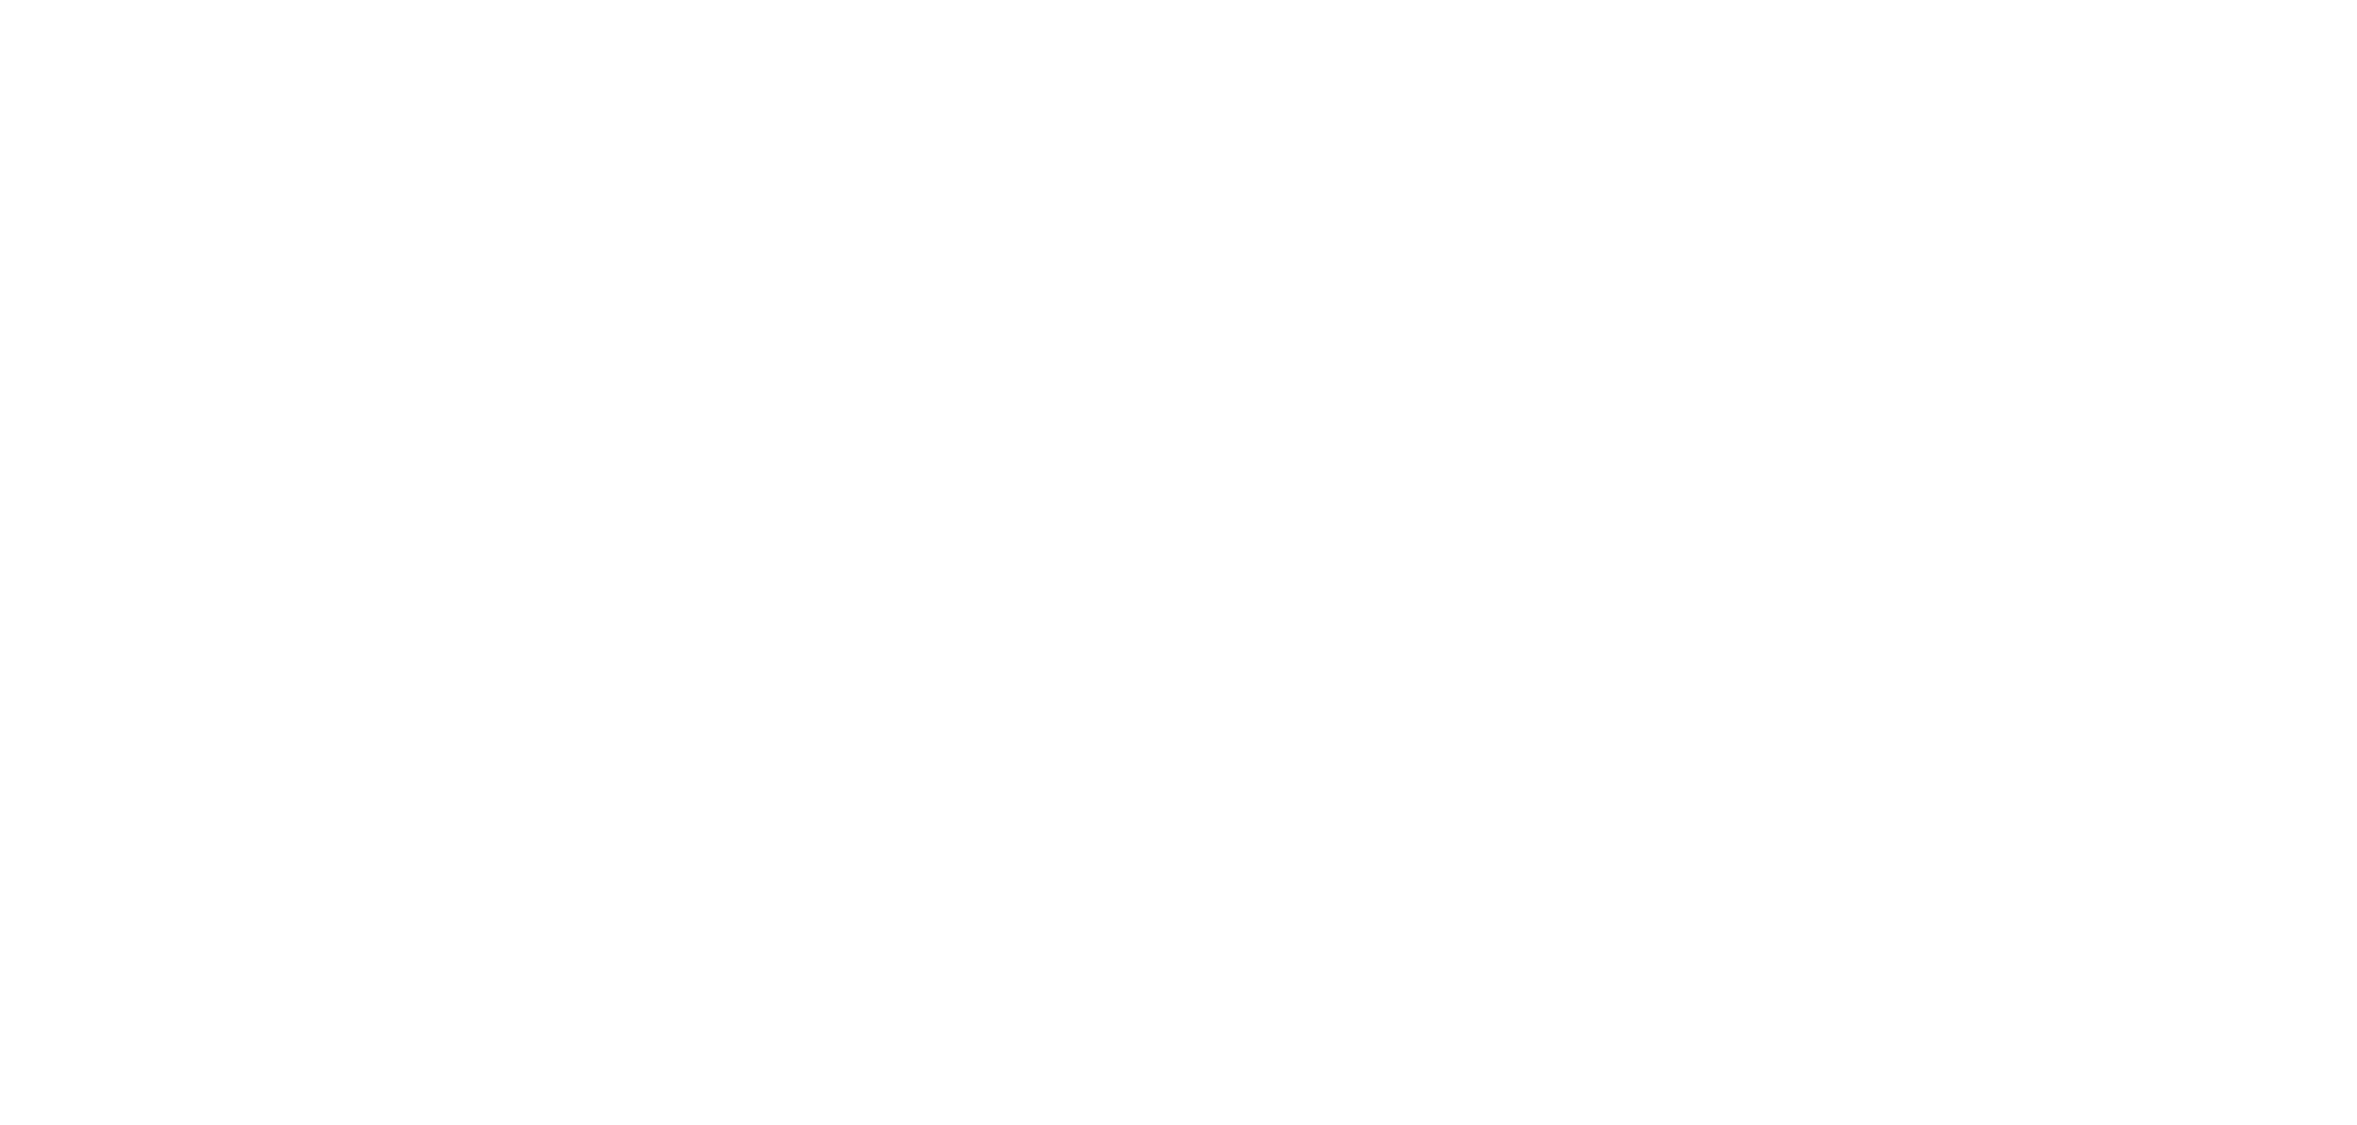 École de mécanique de machines fixes